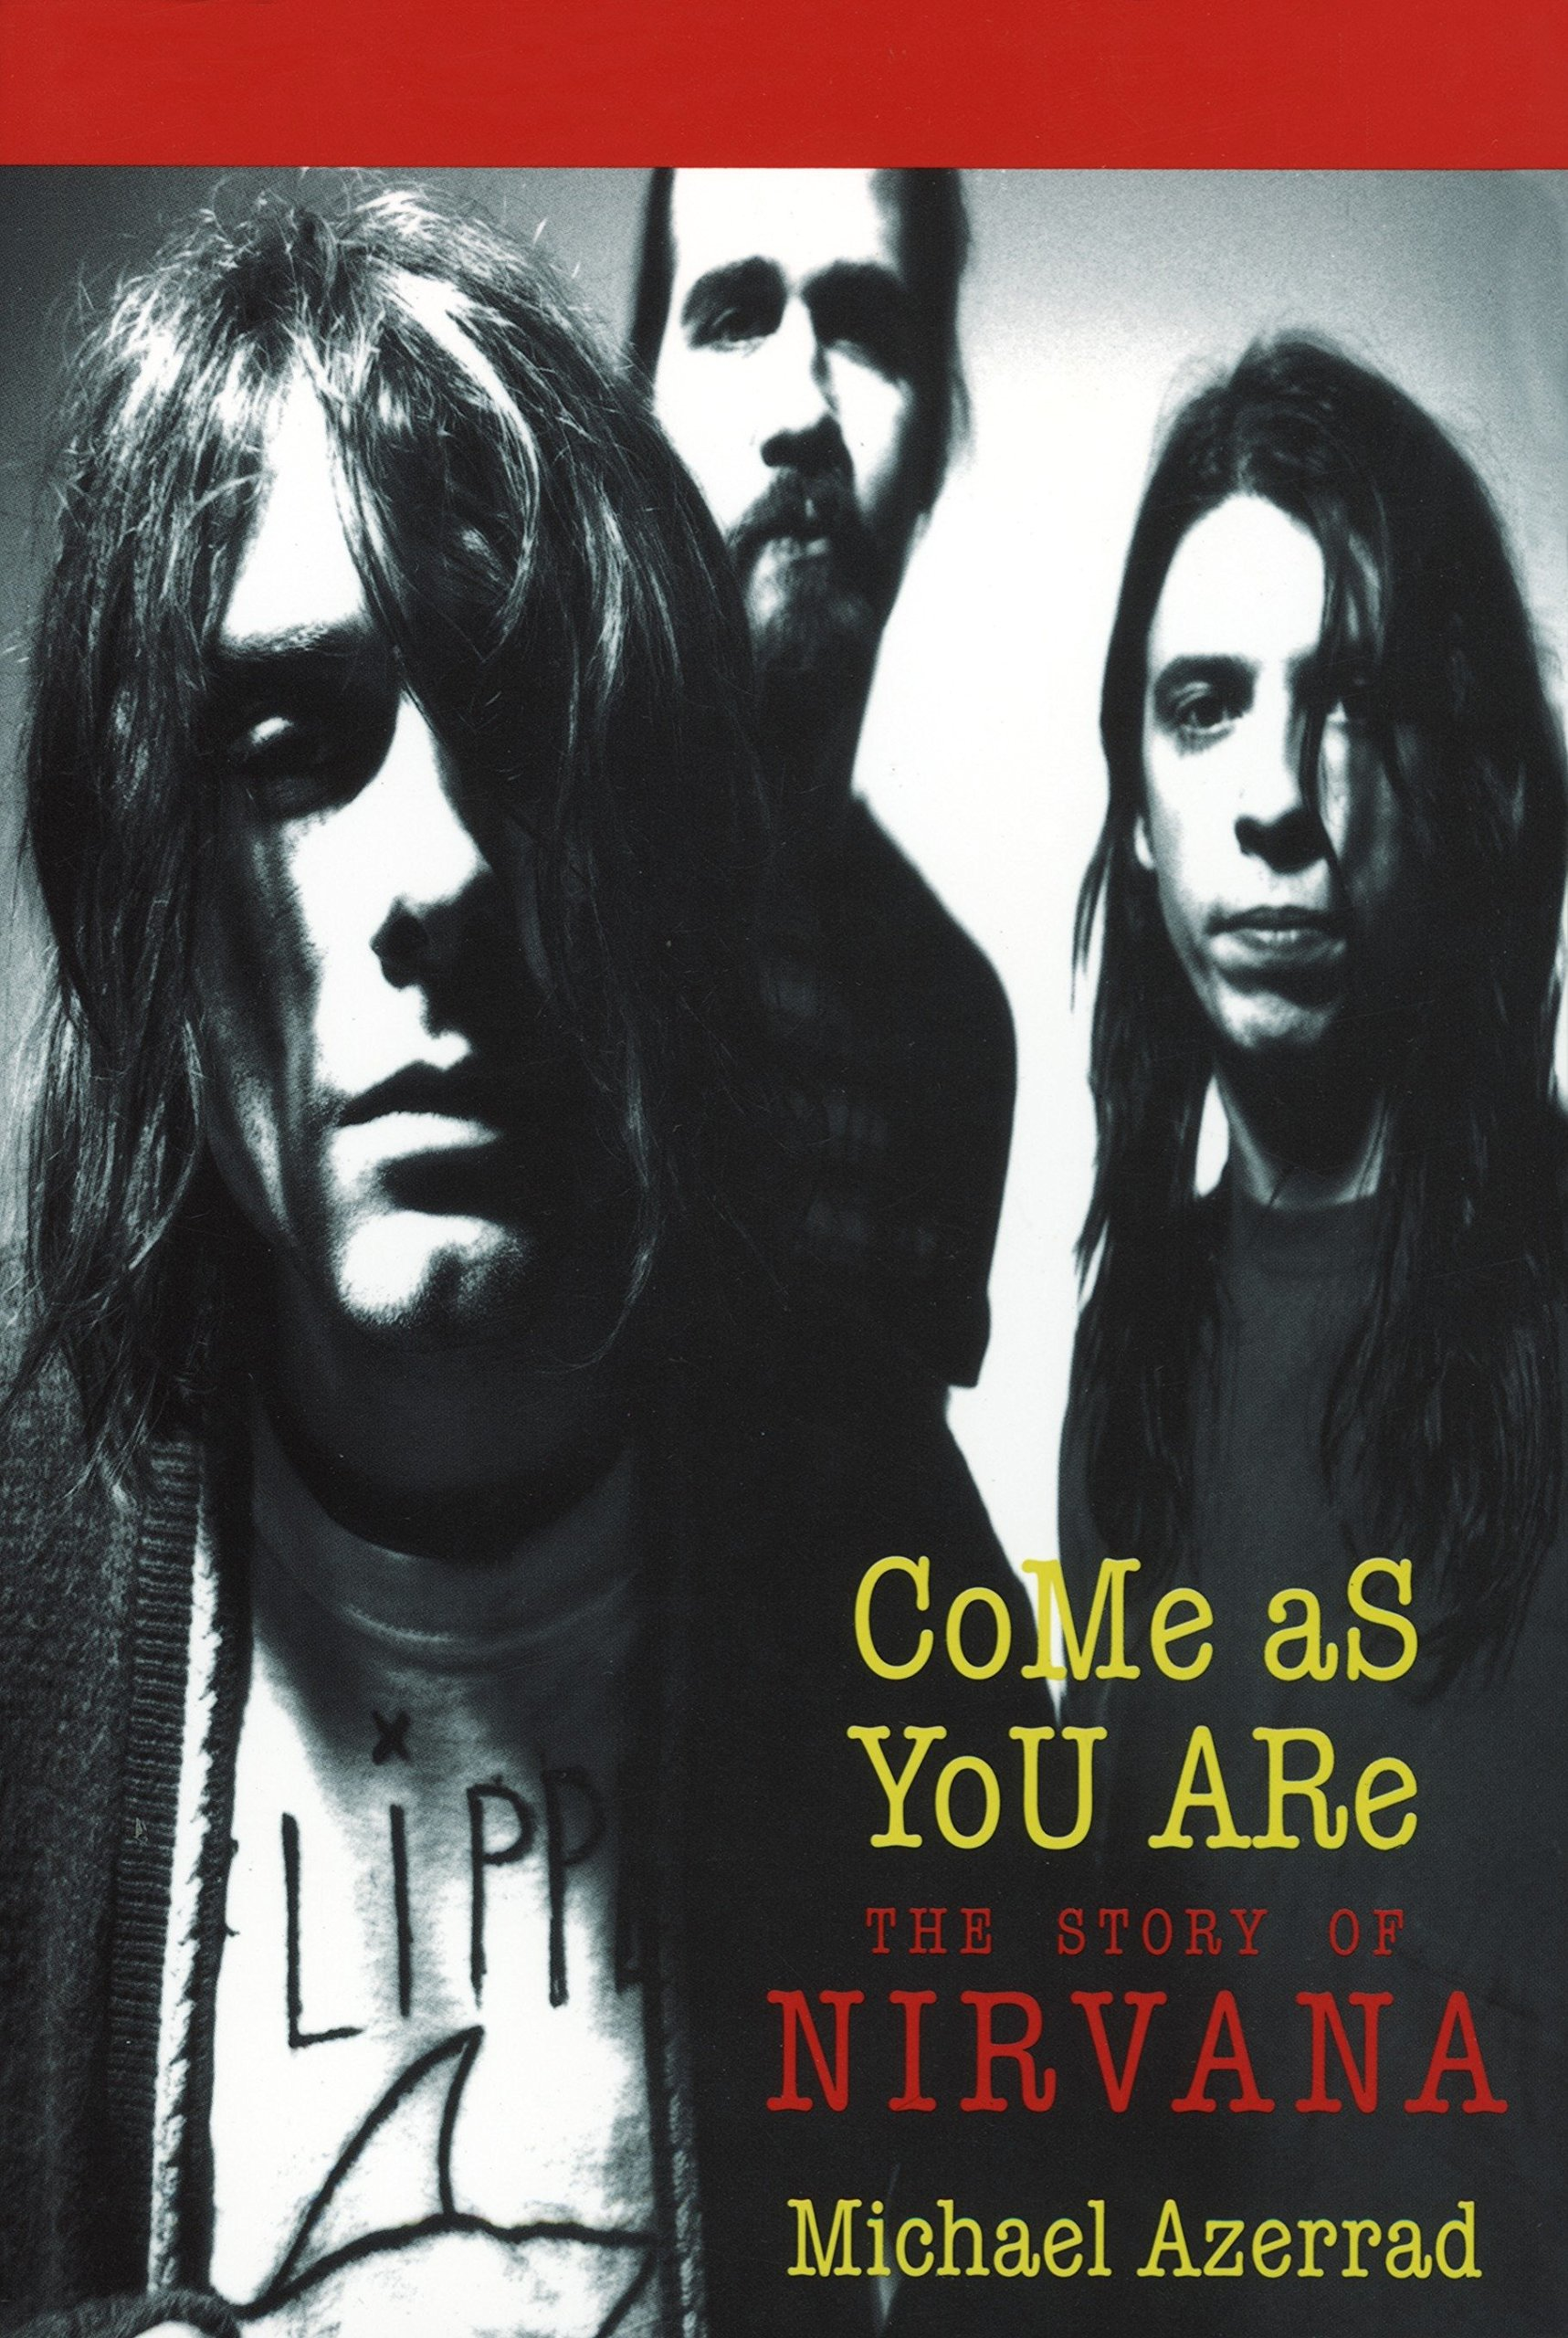 Come As You Are: A História Do Nirvana